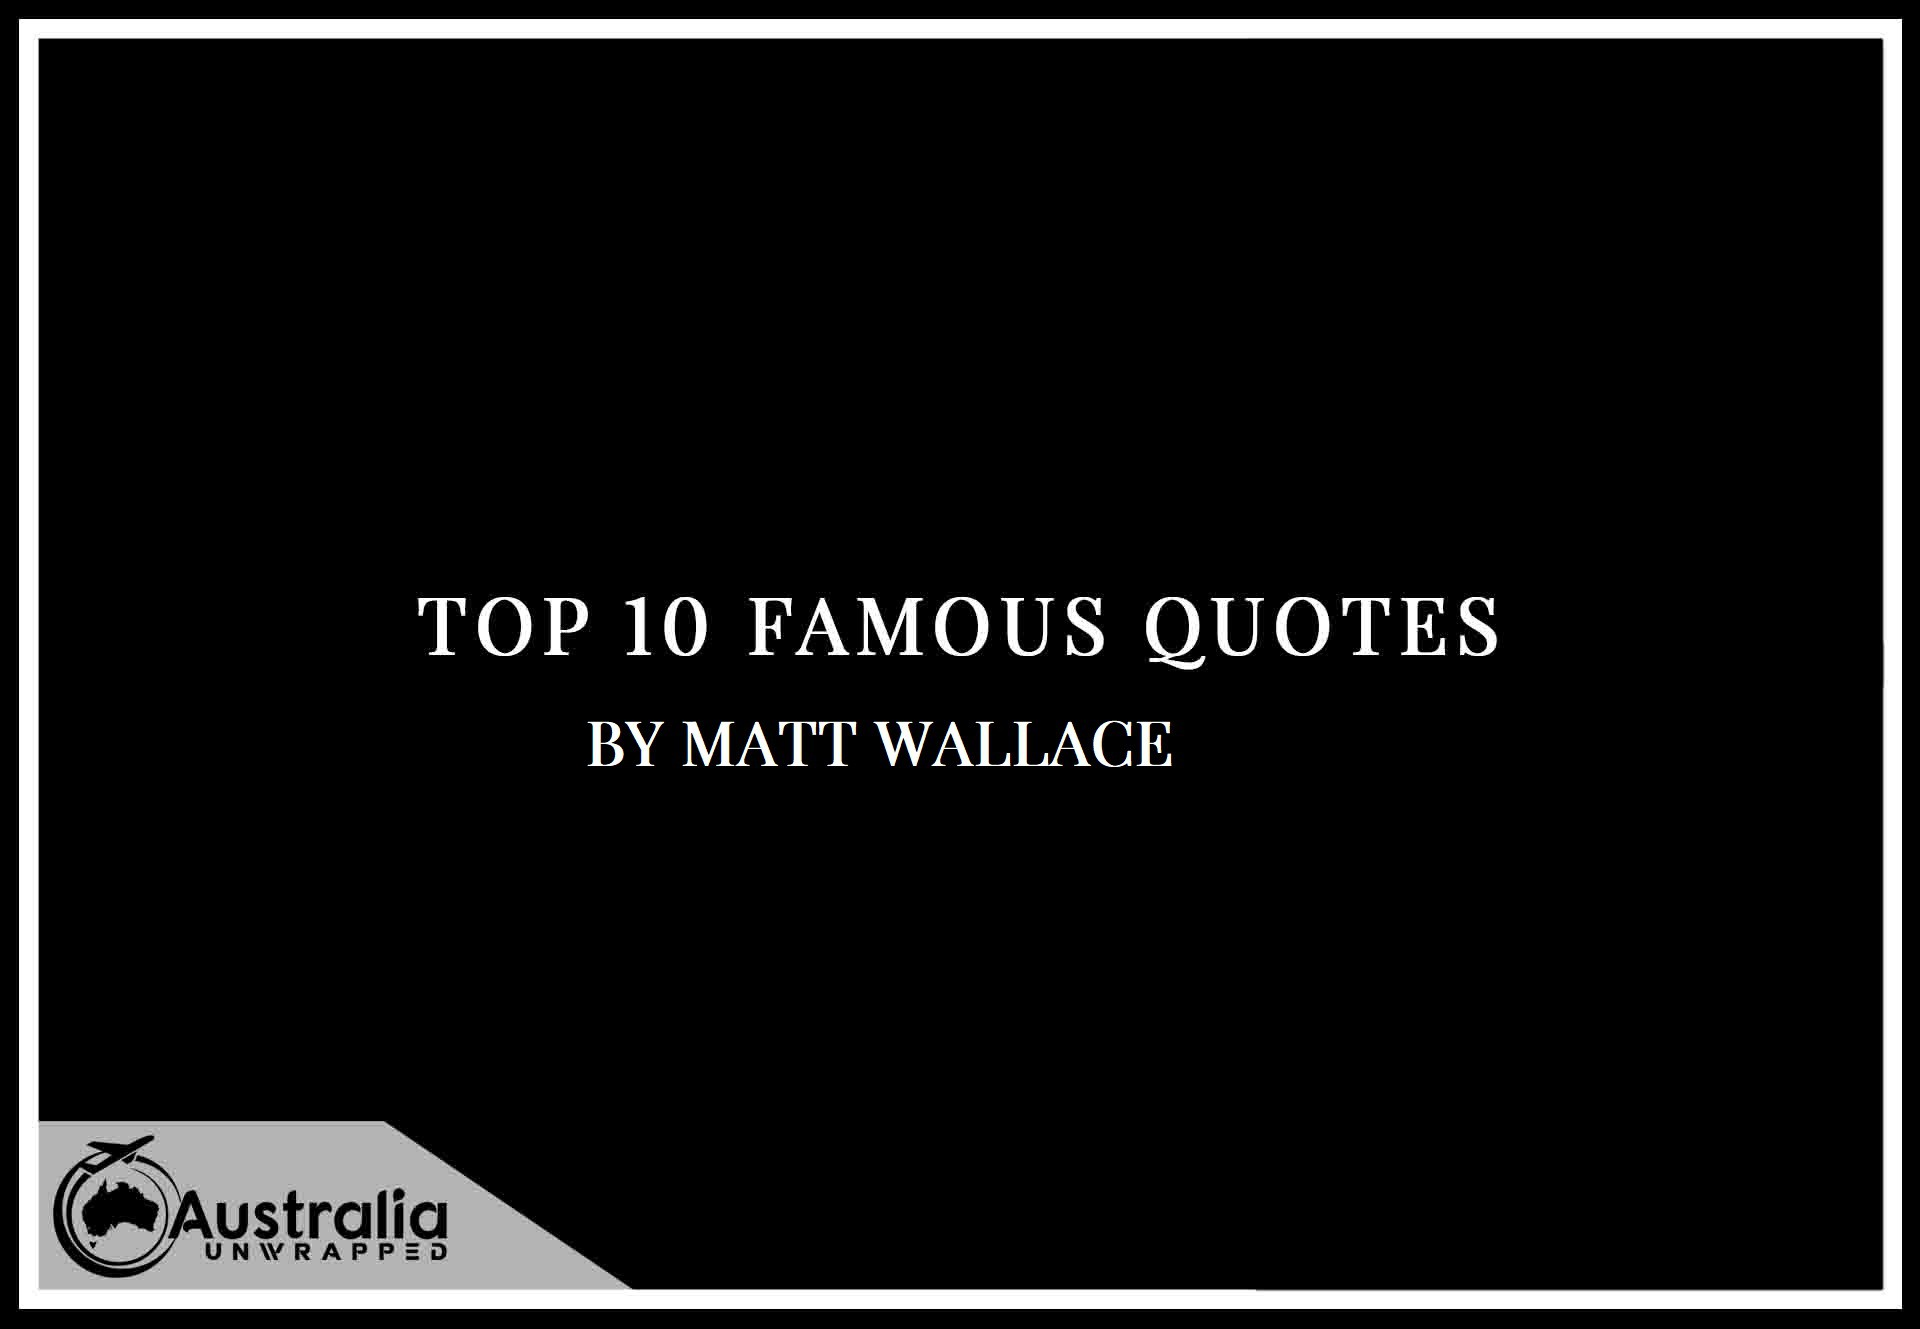 Top 10 Famous Quotes by Author Matt Wallace